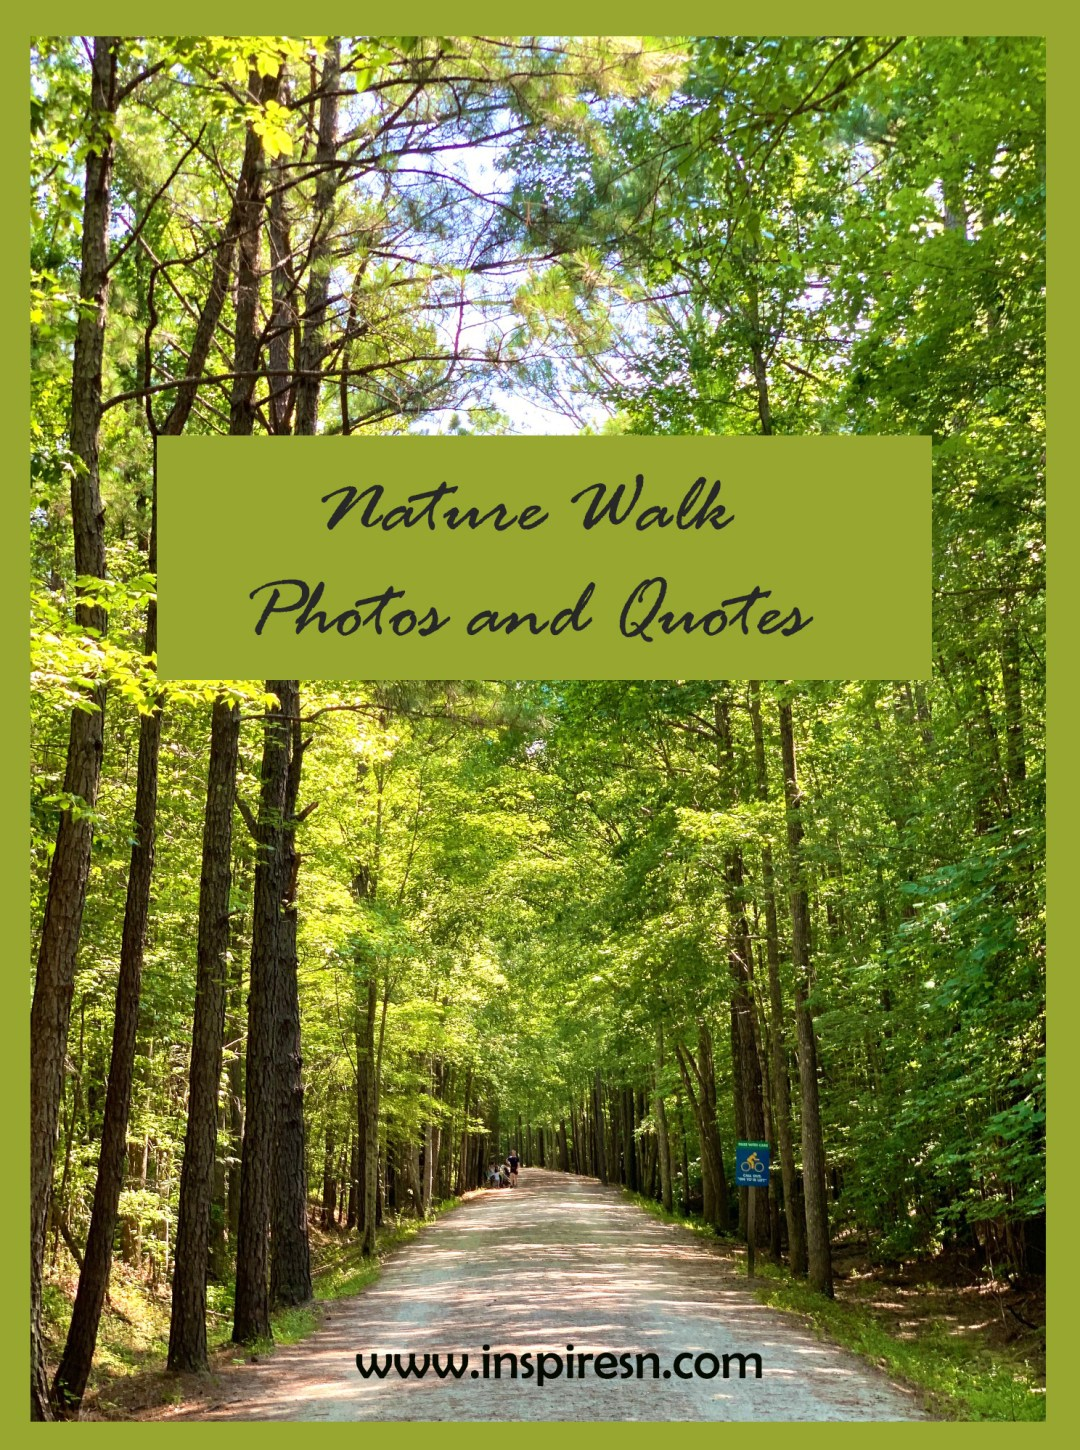 Nature walk - American Tobacco Trail